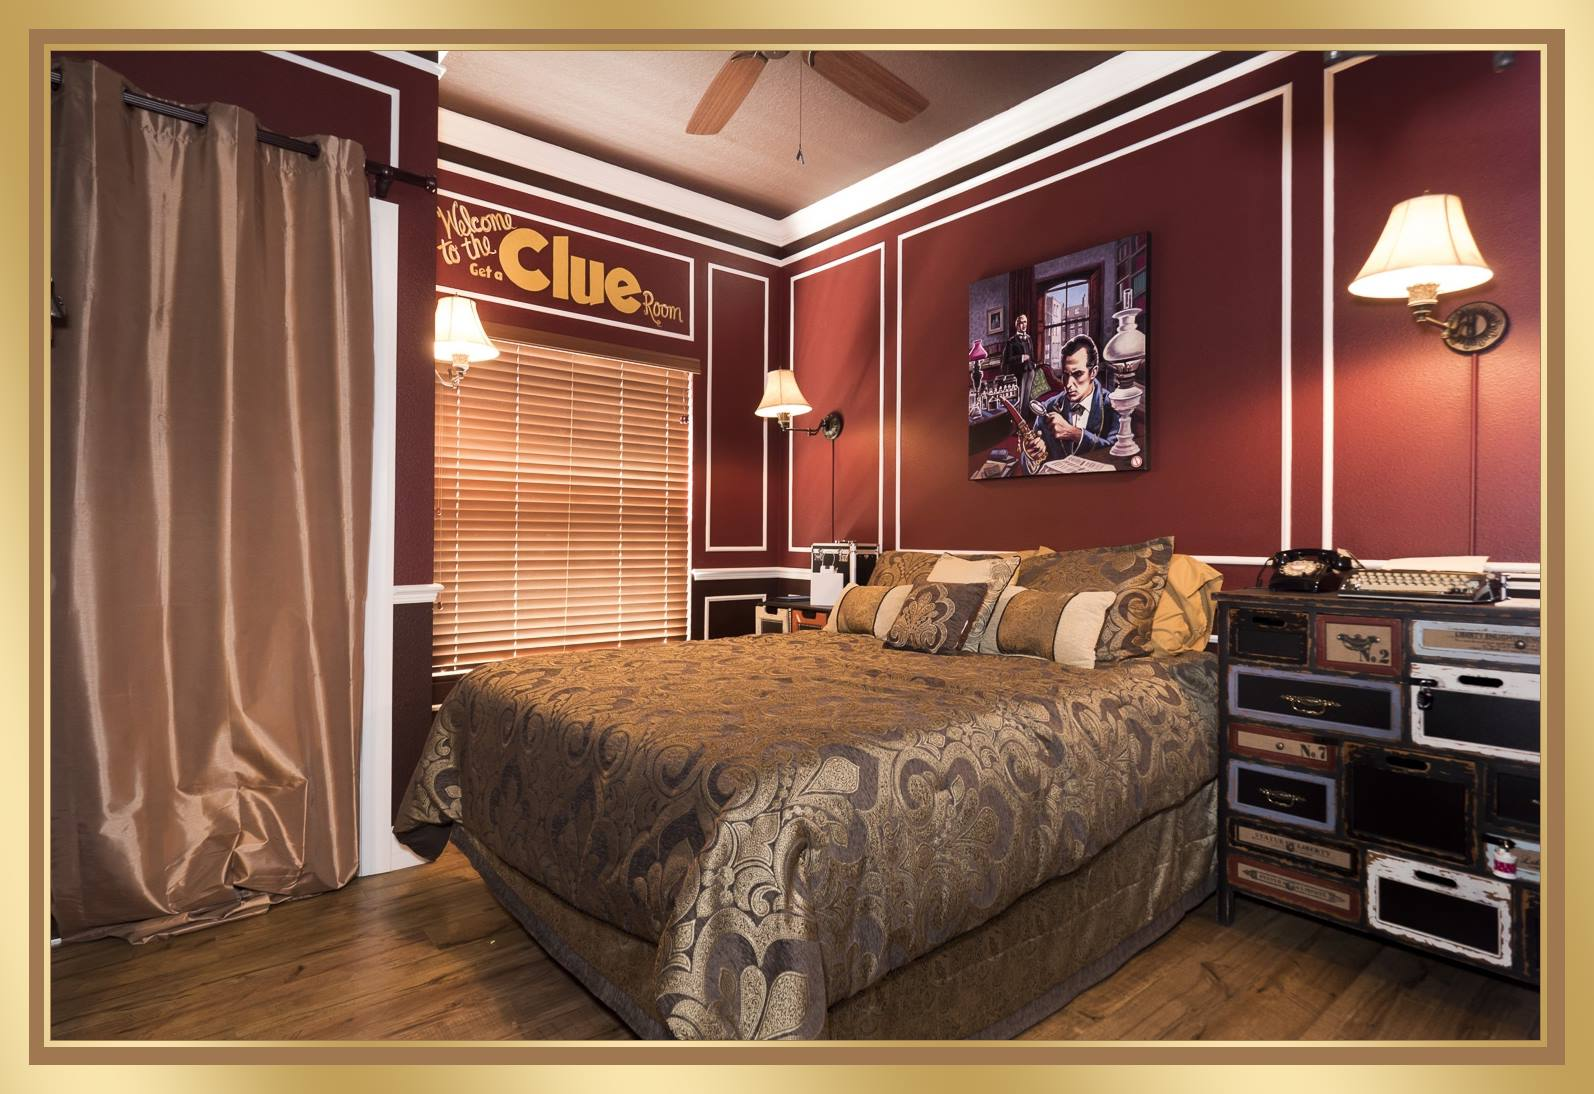 The Get A Clue Escape Room Game Bedroom At The Great Escape